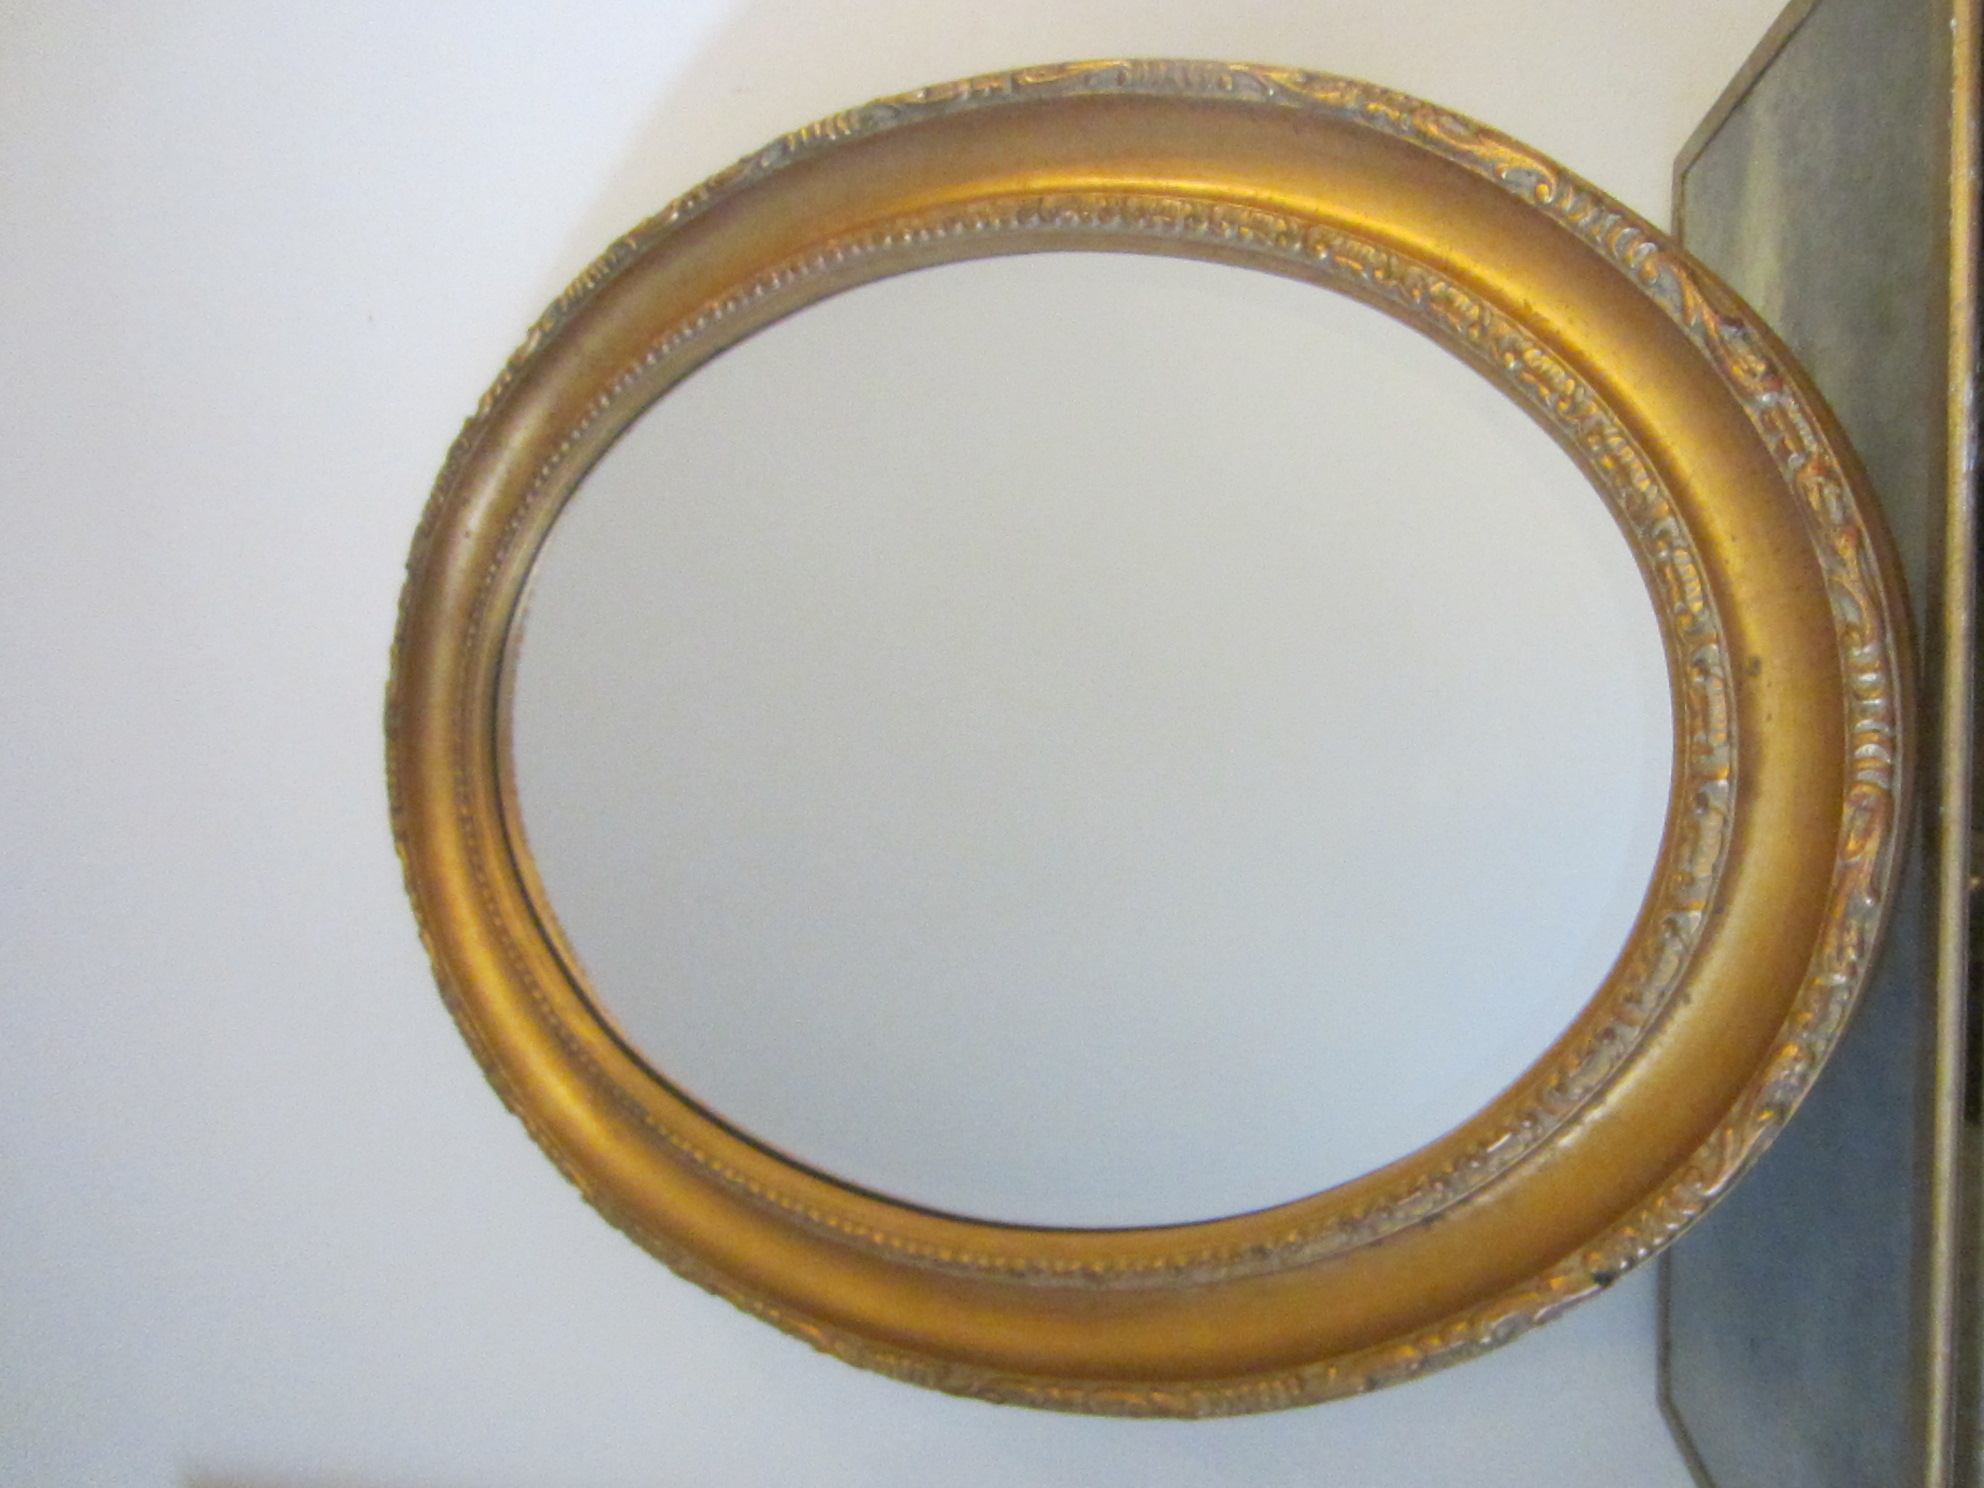 Is Of Wood With Beautiful Gilding Fl Ornamentation This Gorgeous Large Wall Beveled Mirror Label Verso The Aged Heavy